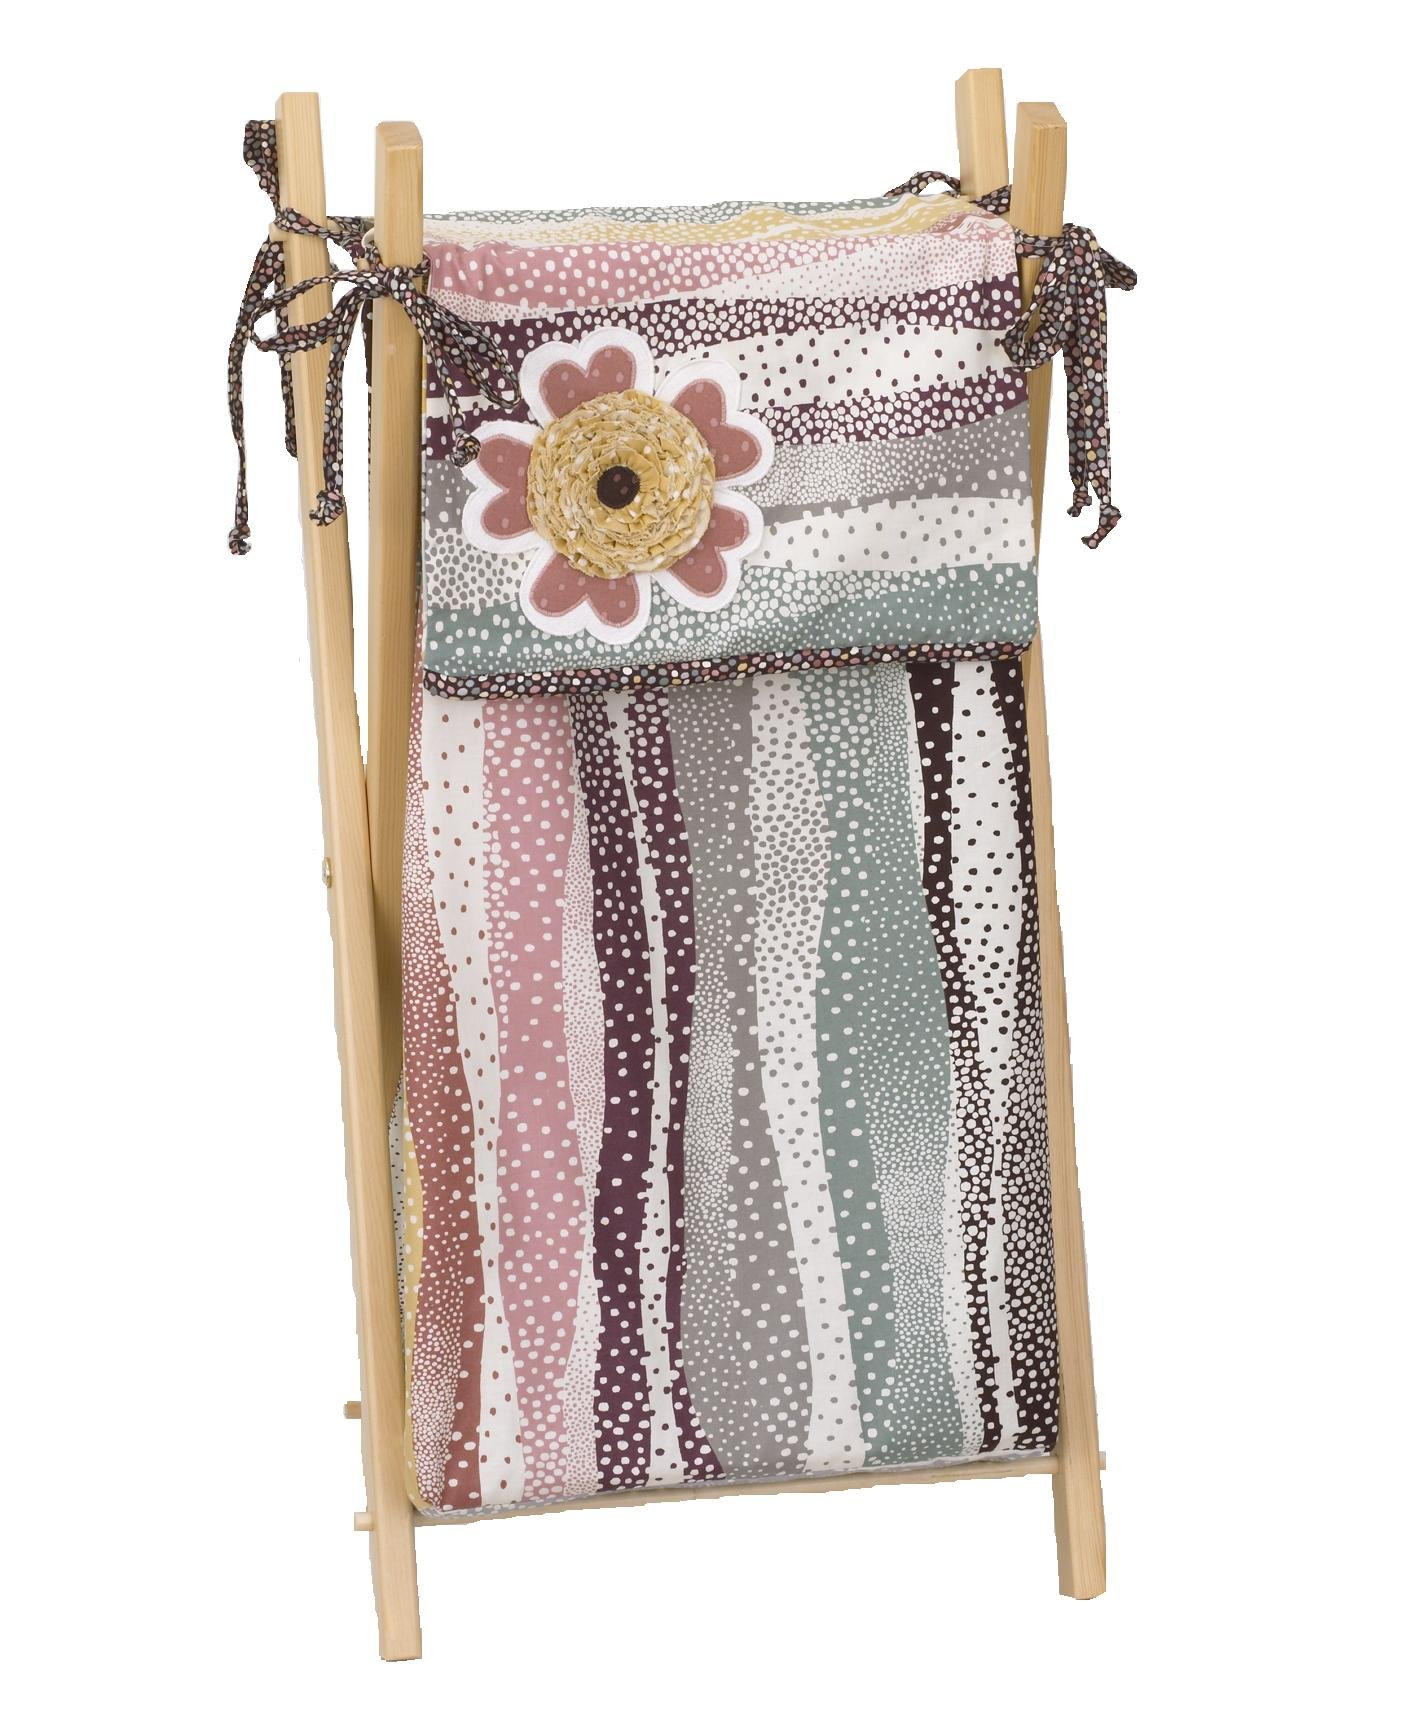 Cotton Tale Designs Penny Lane Hamper (Discontinued by Manufacturer)